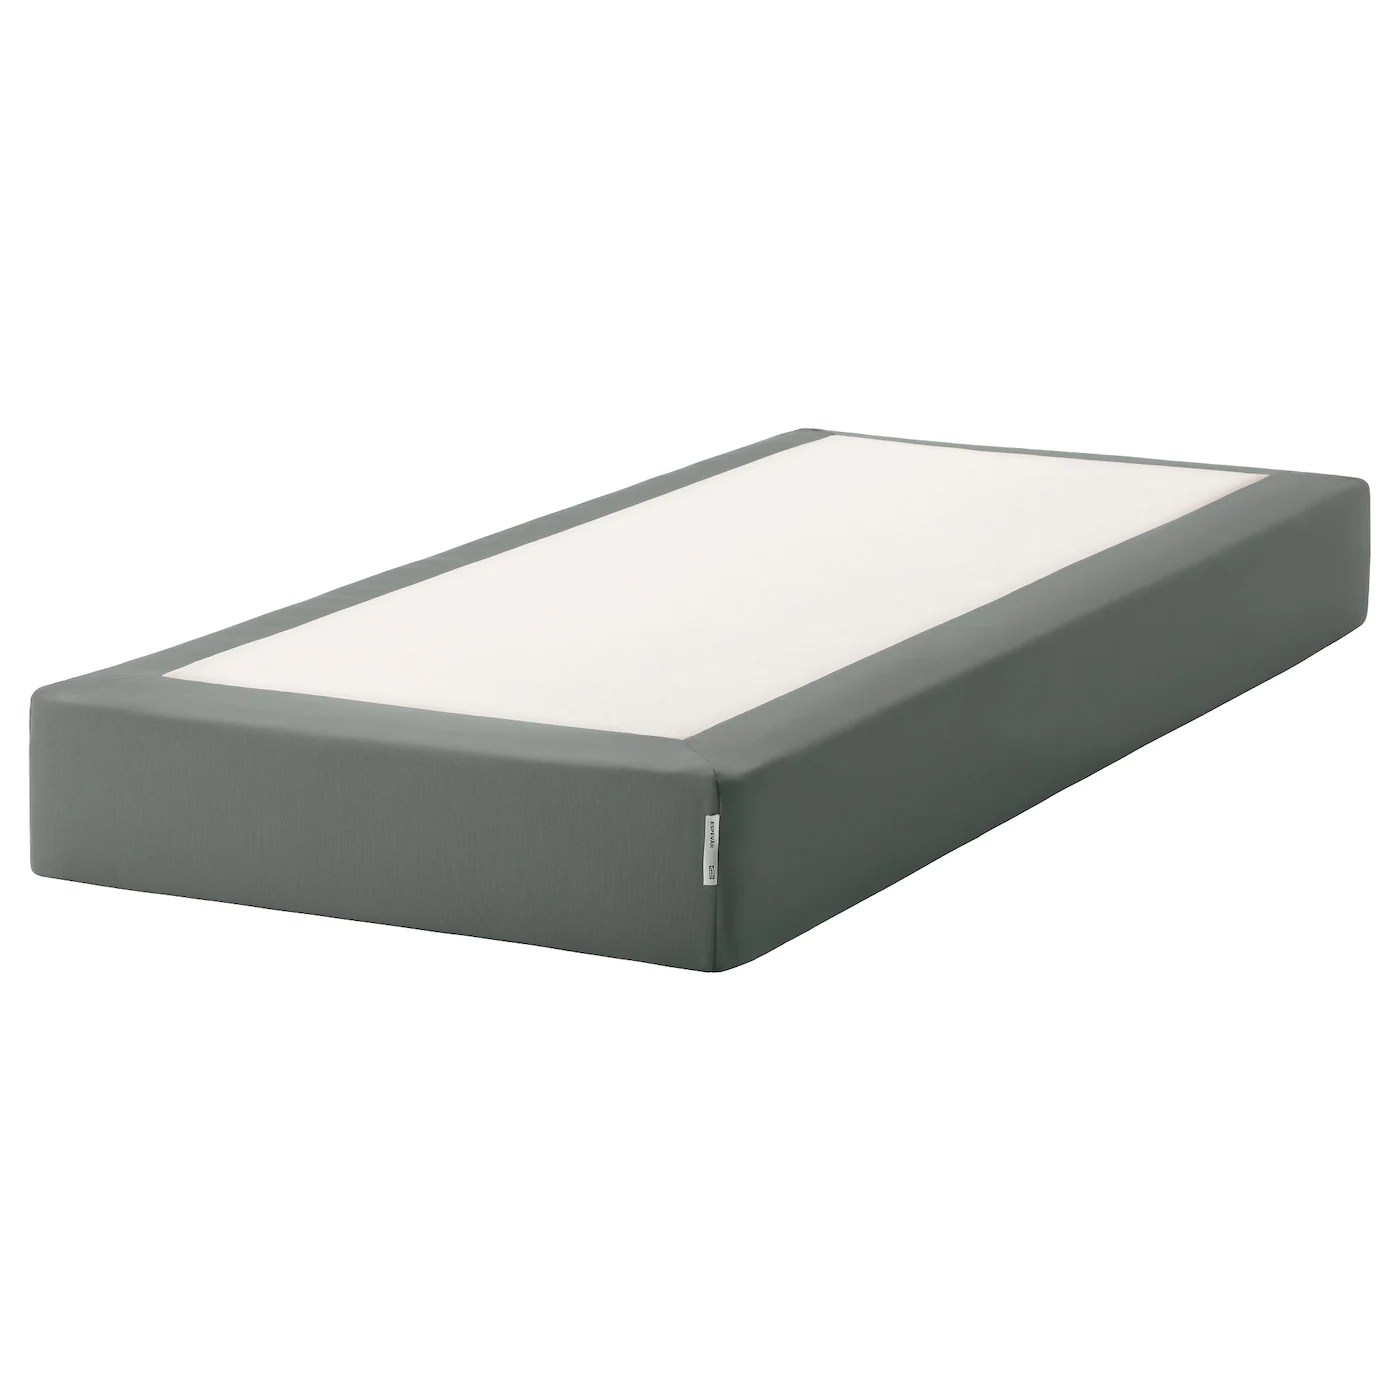 ikea espevar sprung mattress base easy to transport as the mattress base comes in a